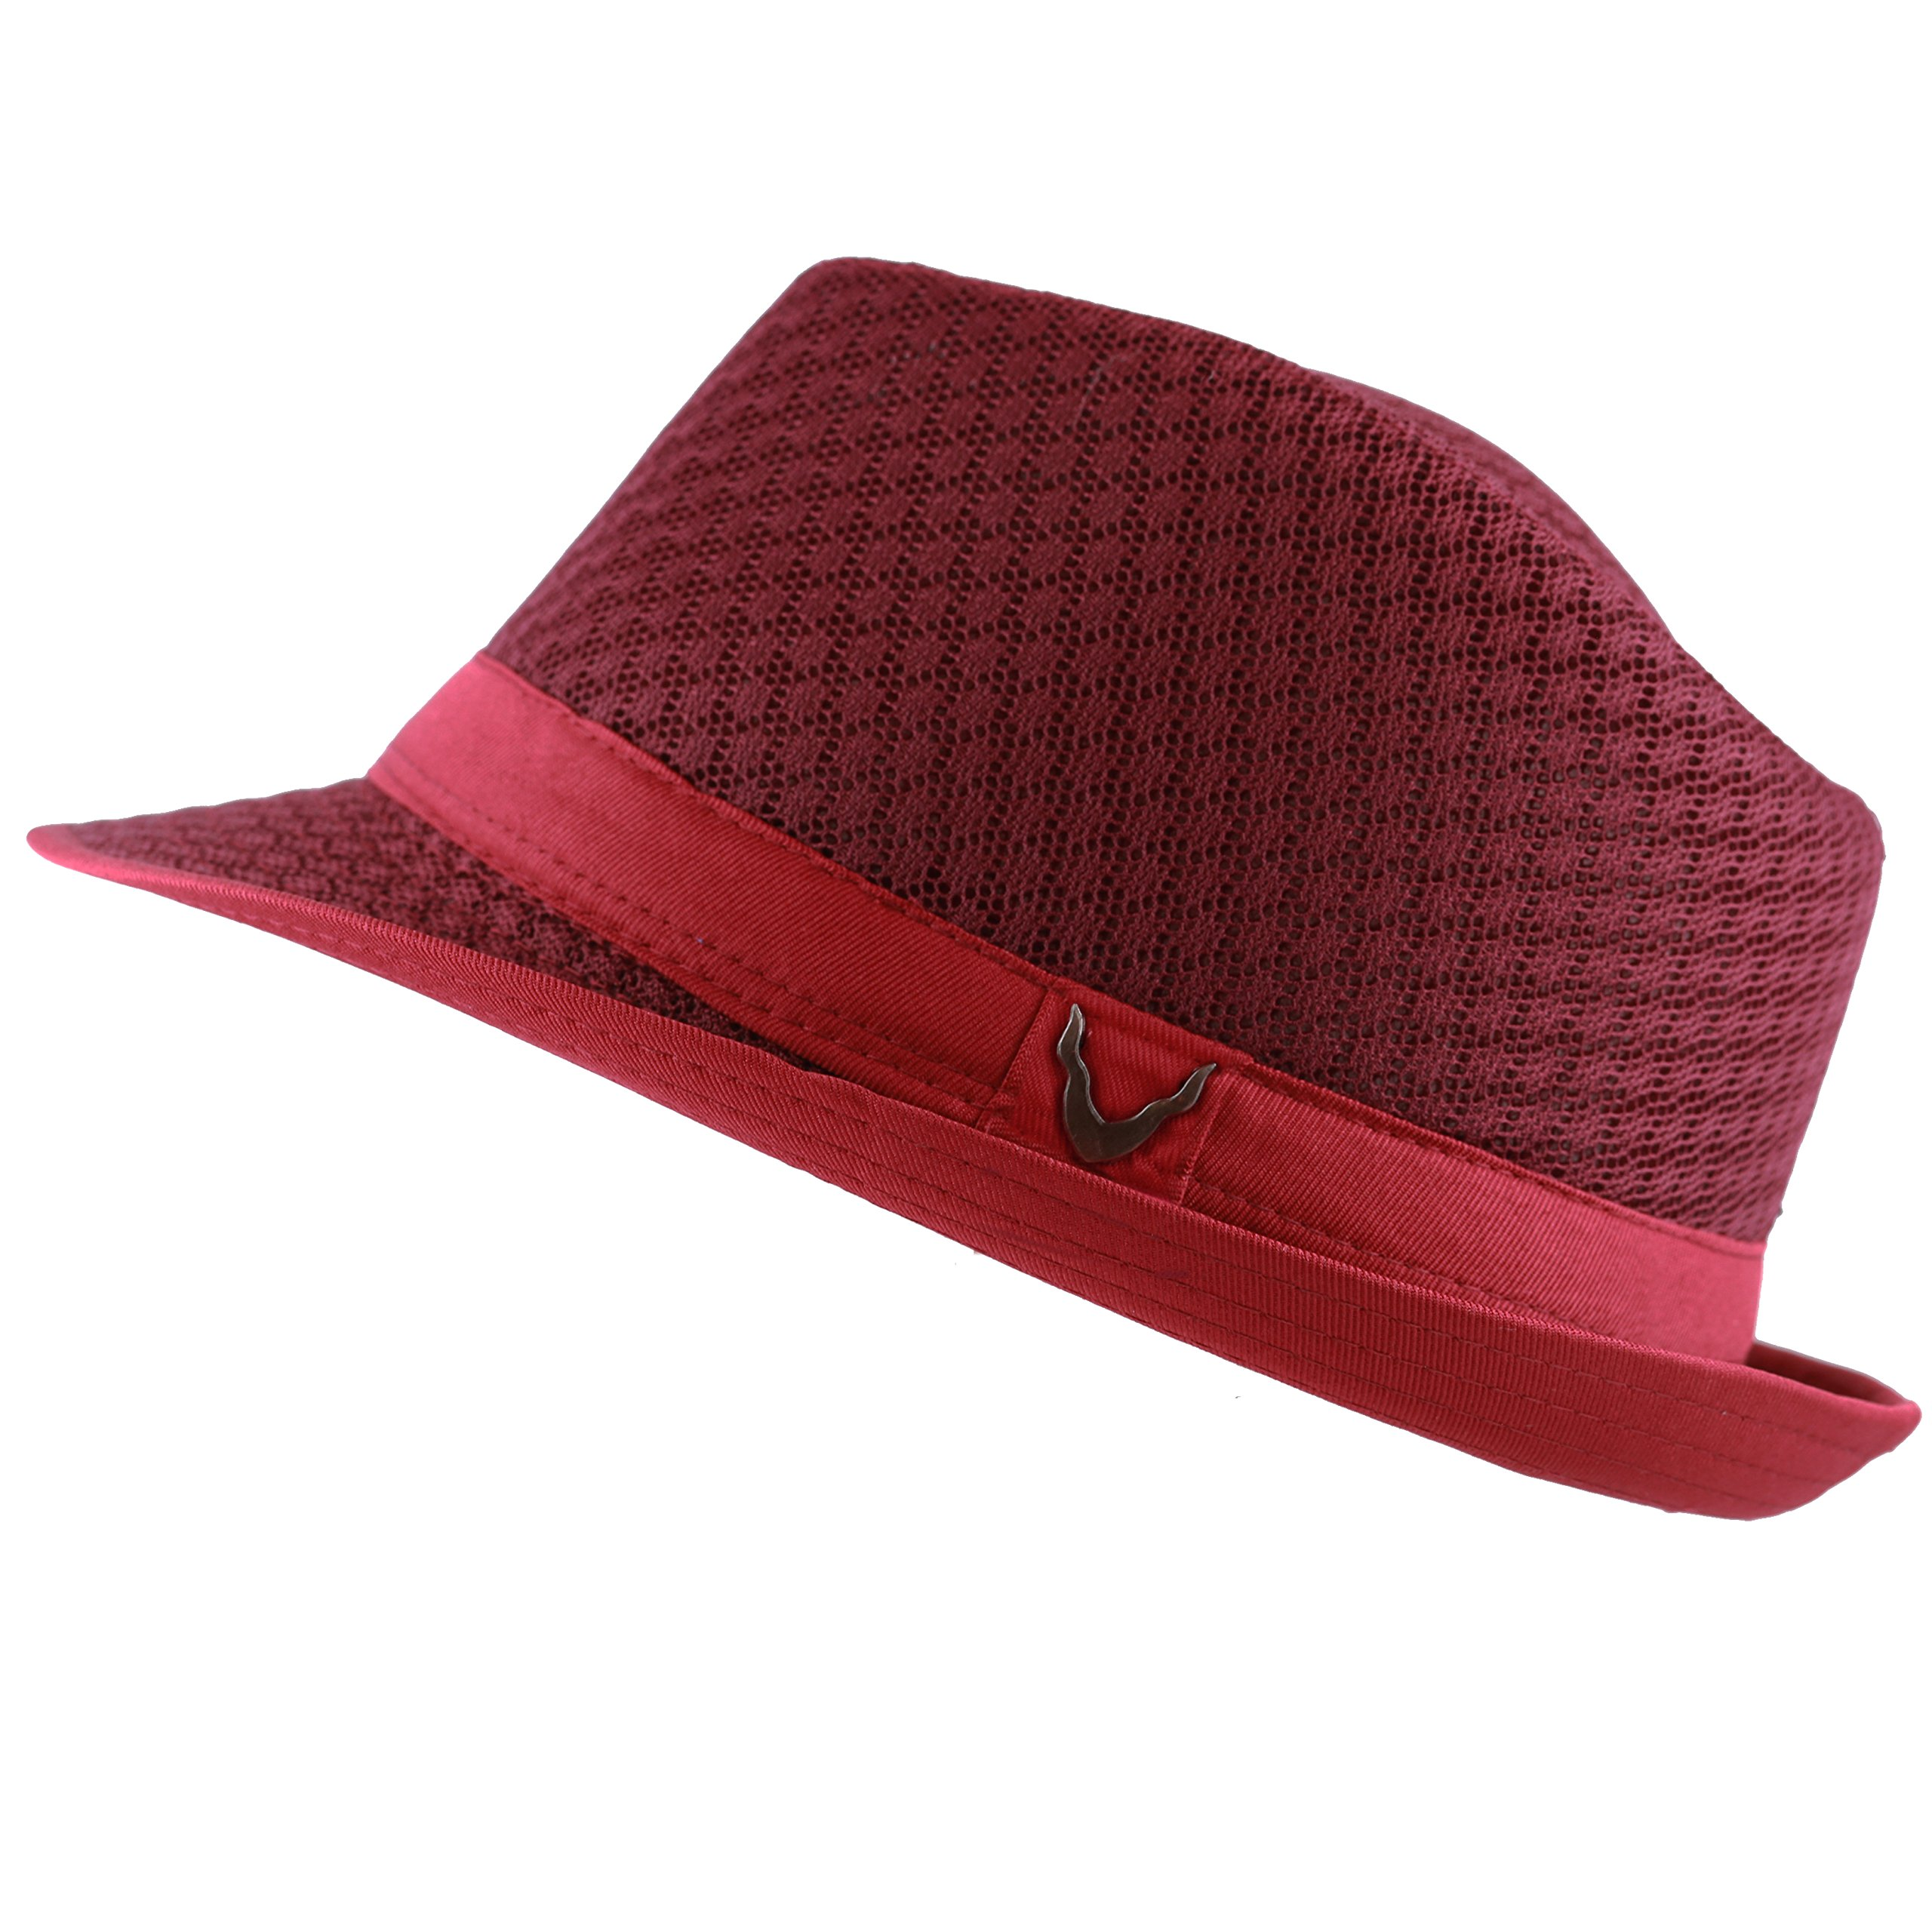 Black Horn Light Weight Classic Soft Cool Mesh Fedora hat (S/M, Burgundy)